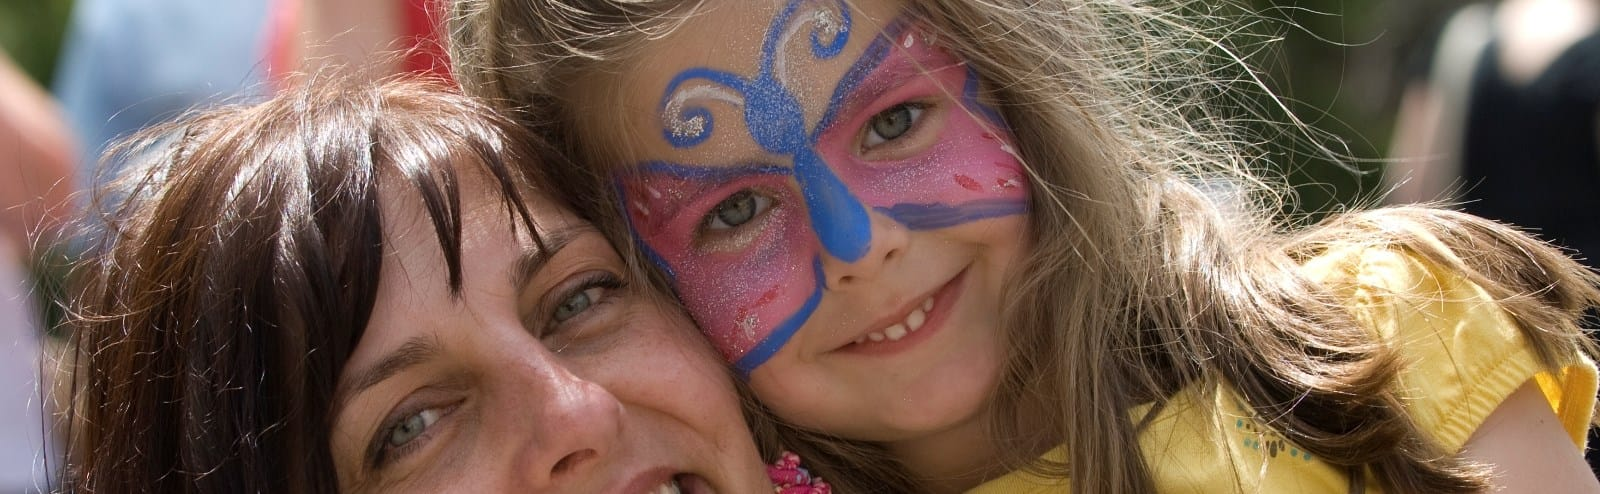 Young Lady With Face Painting